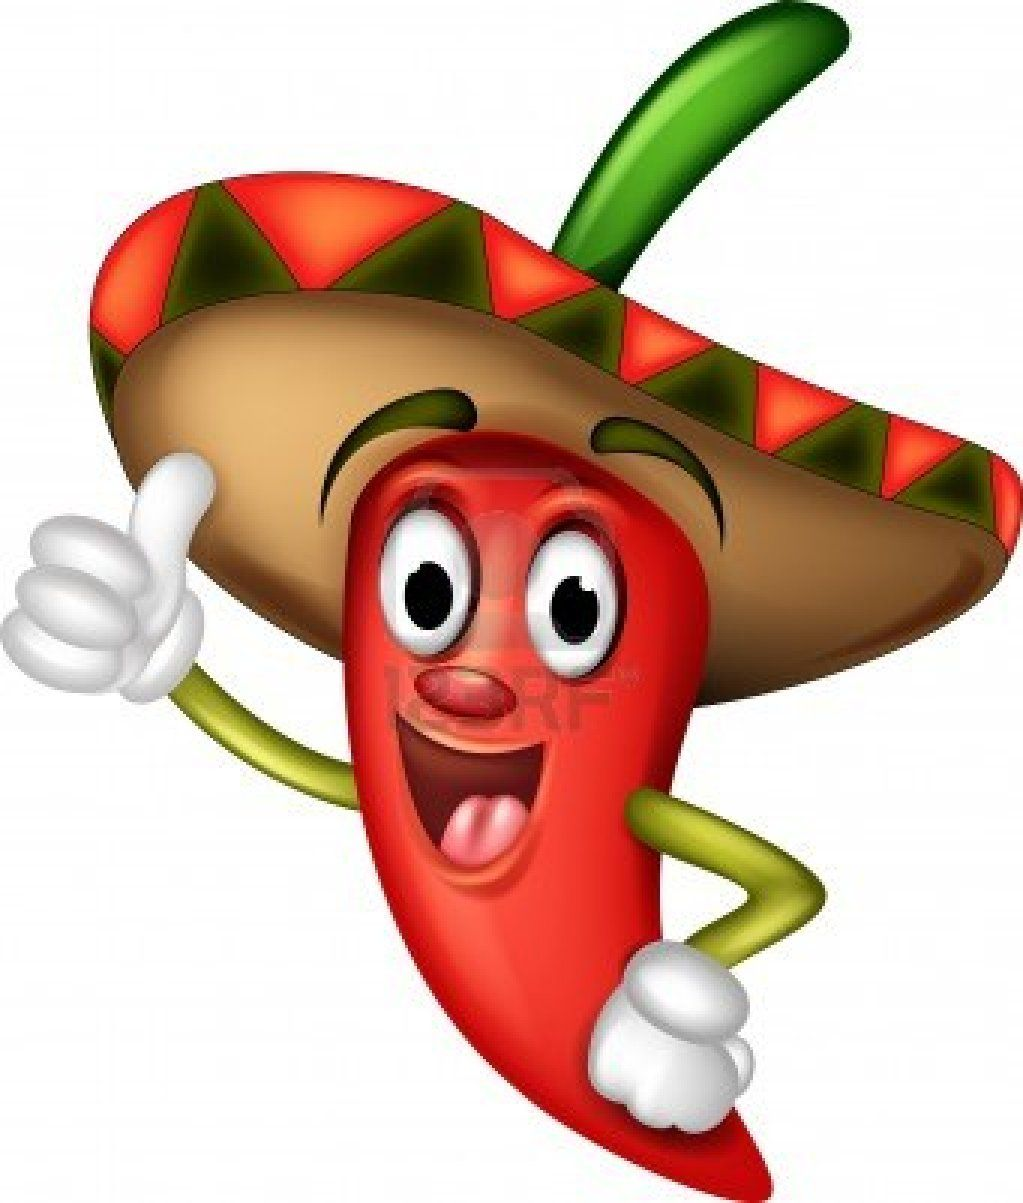 hight resolution of chili pepper cartoon thumbs up stock photo chile mexicano mexican party mexican night